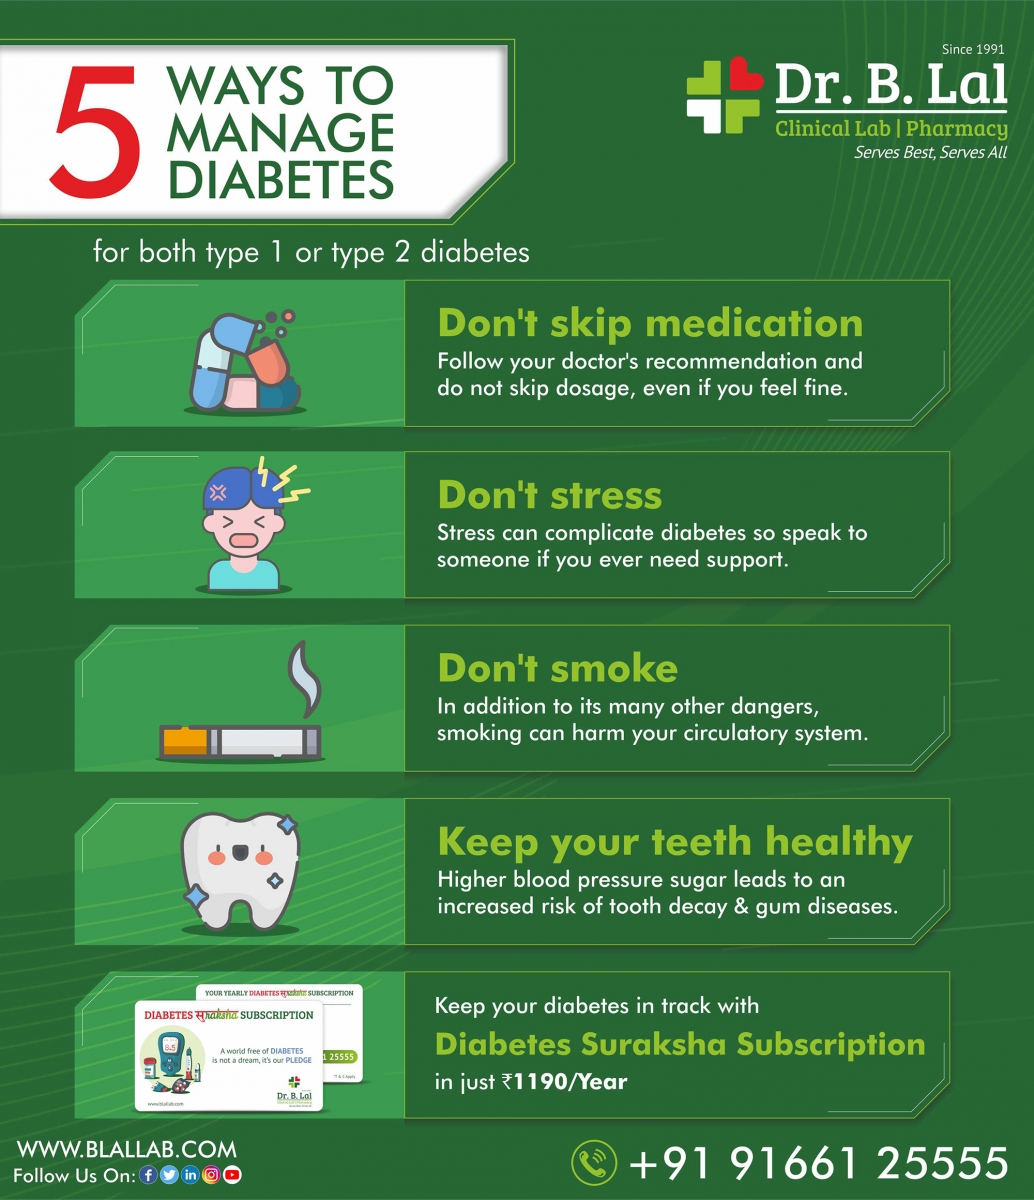 5 ways to manager Diabetes   Dr. B. Lal Clinical Laboratory   www.blallab.com